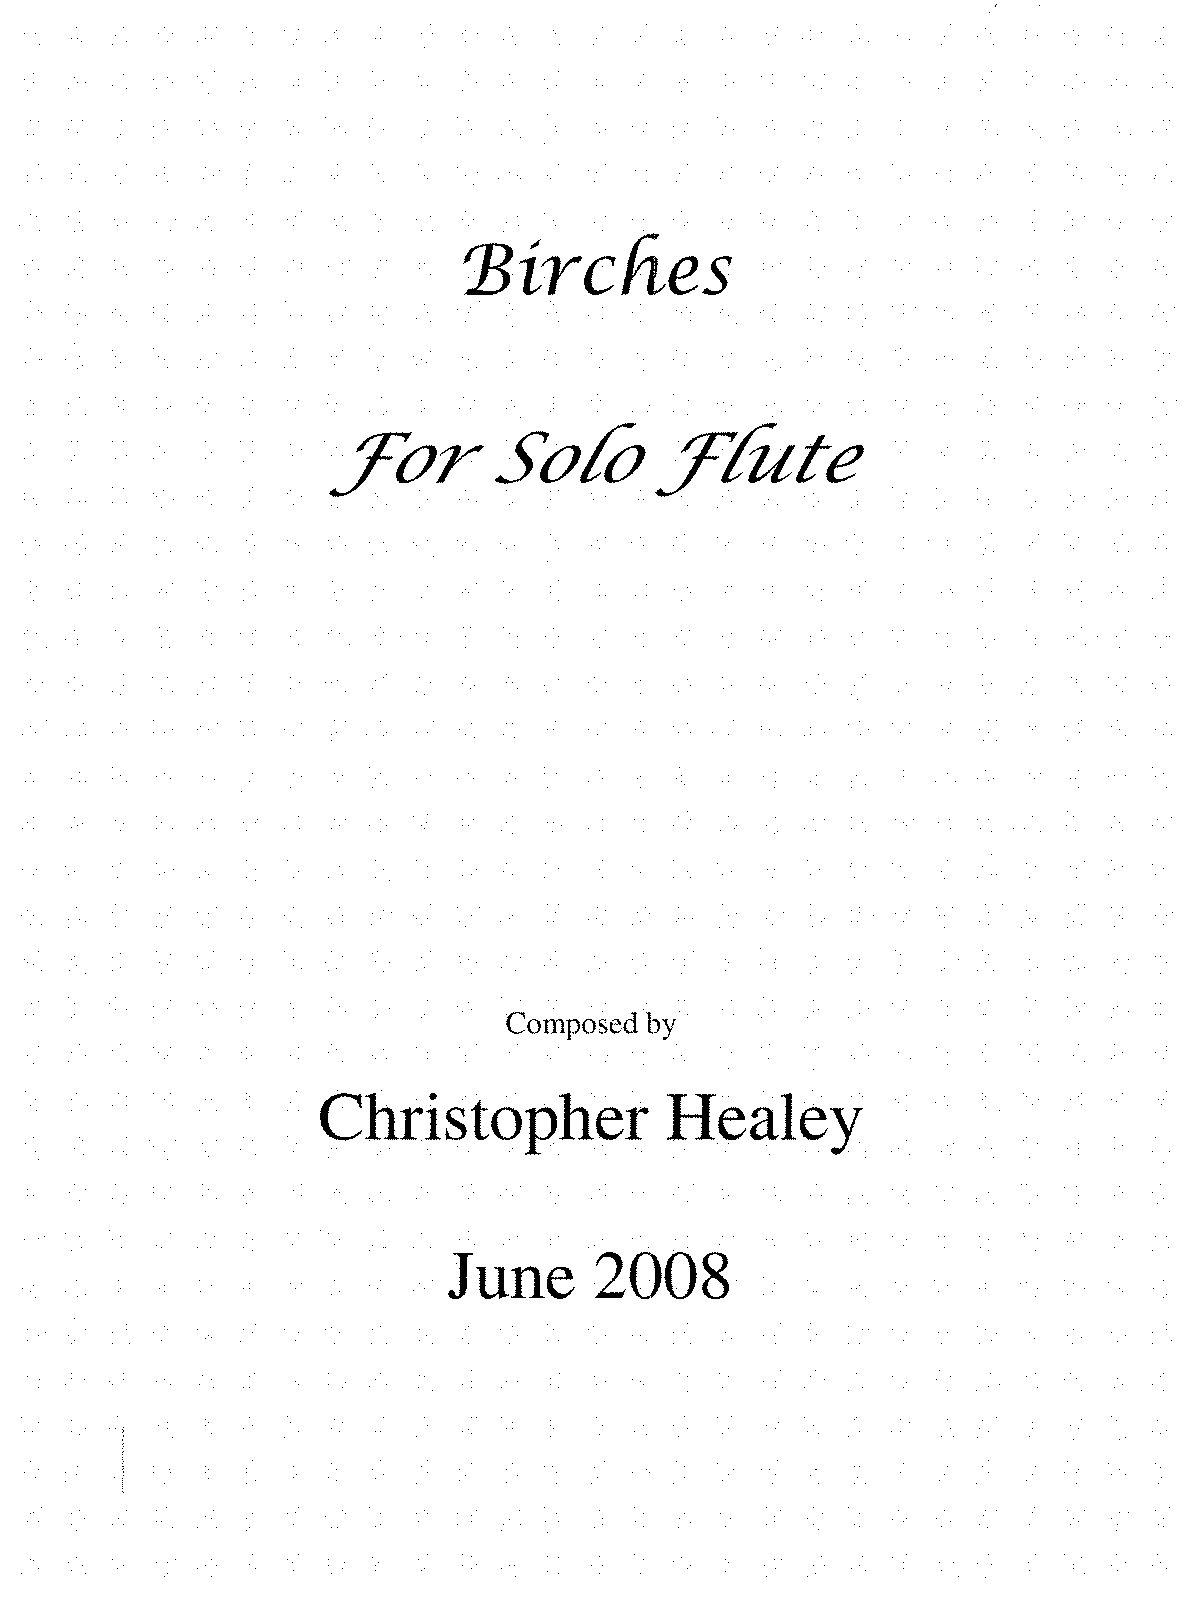 PMLP491405-Birches for Solo Flute 2008.pdf